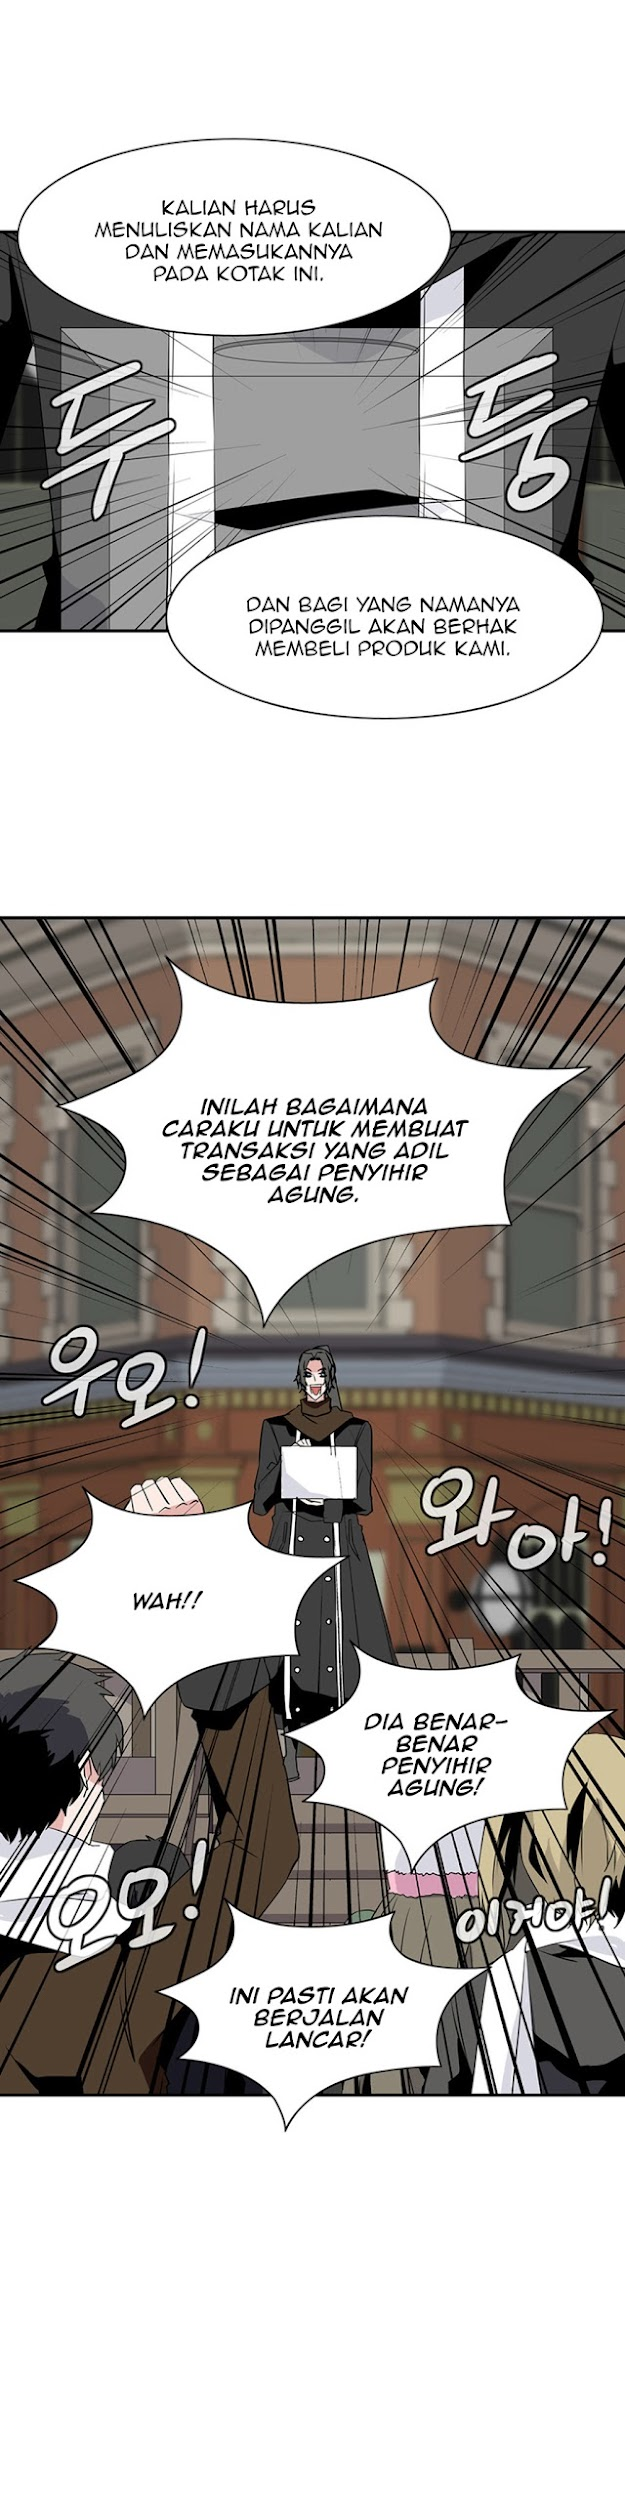 Dilarang COPAS - situs resmi www.mangacanblog.com - Komik wizardly tower 030 - chapter 30 31 Indonesia wizardly tower 030 - chapter 30 Terbaru 19|Baca Manga Komik Indonesia|Mangacan